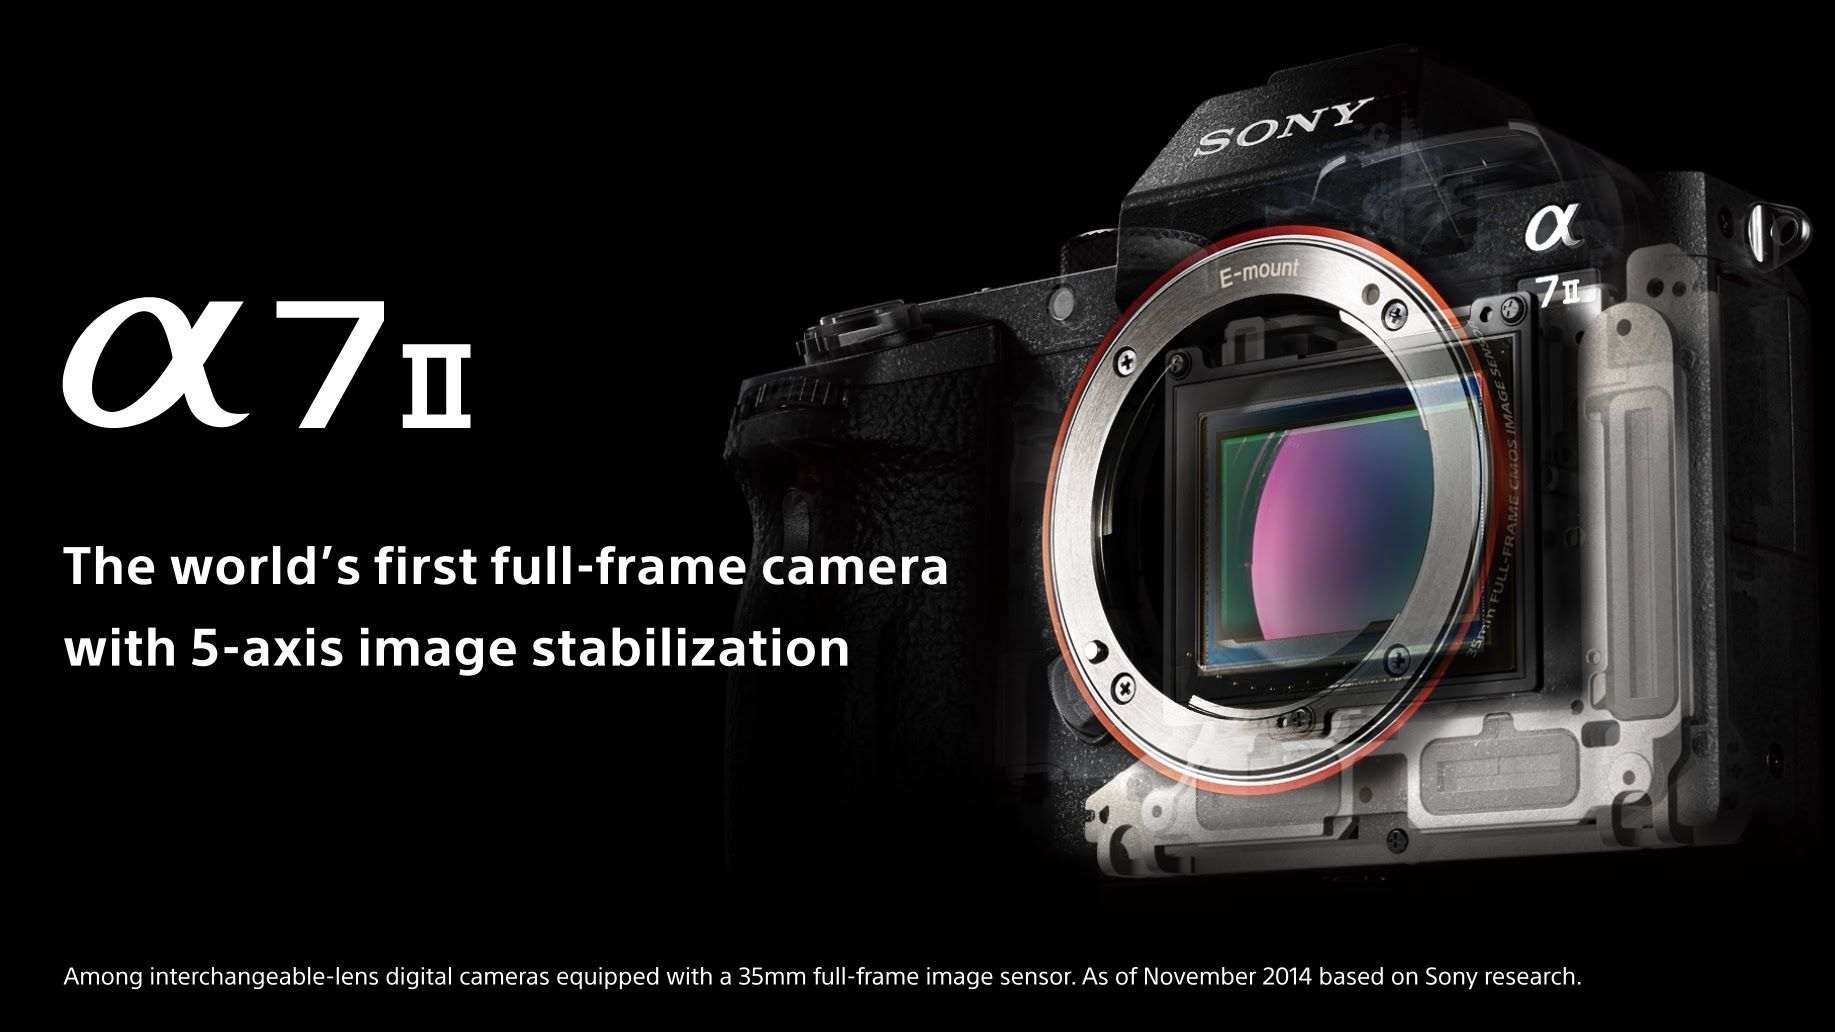 Sony Announces the a7II: The World's First Full-Frame Camera with 5-Axis Image Stabilization